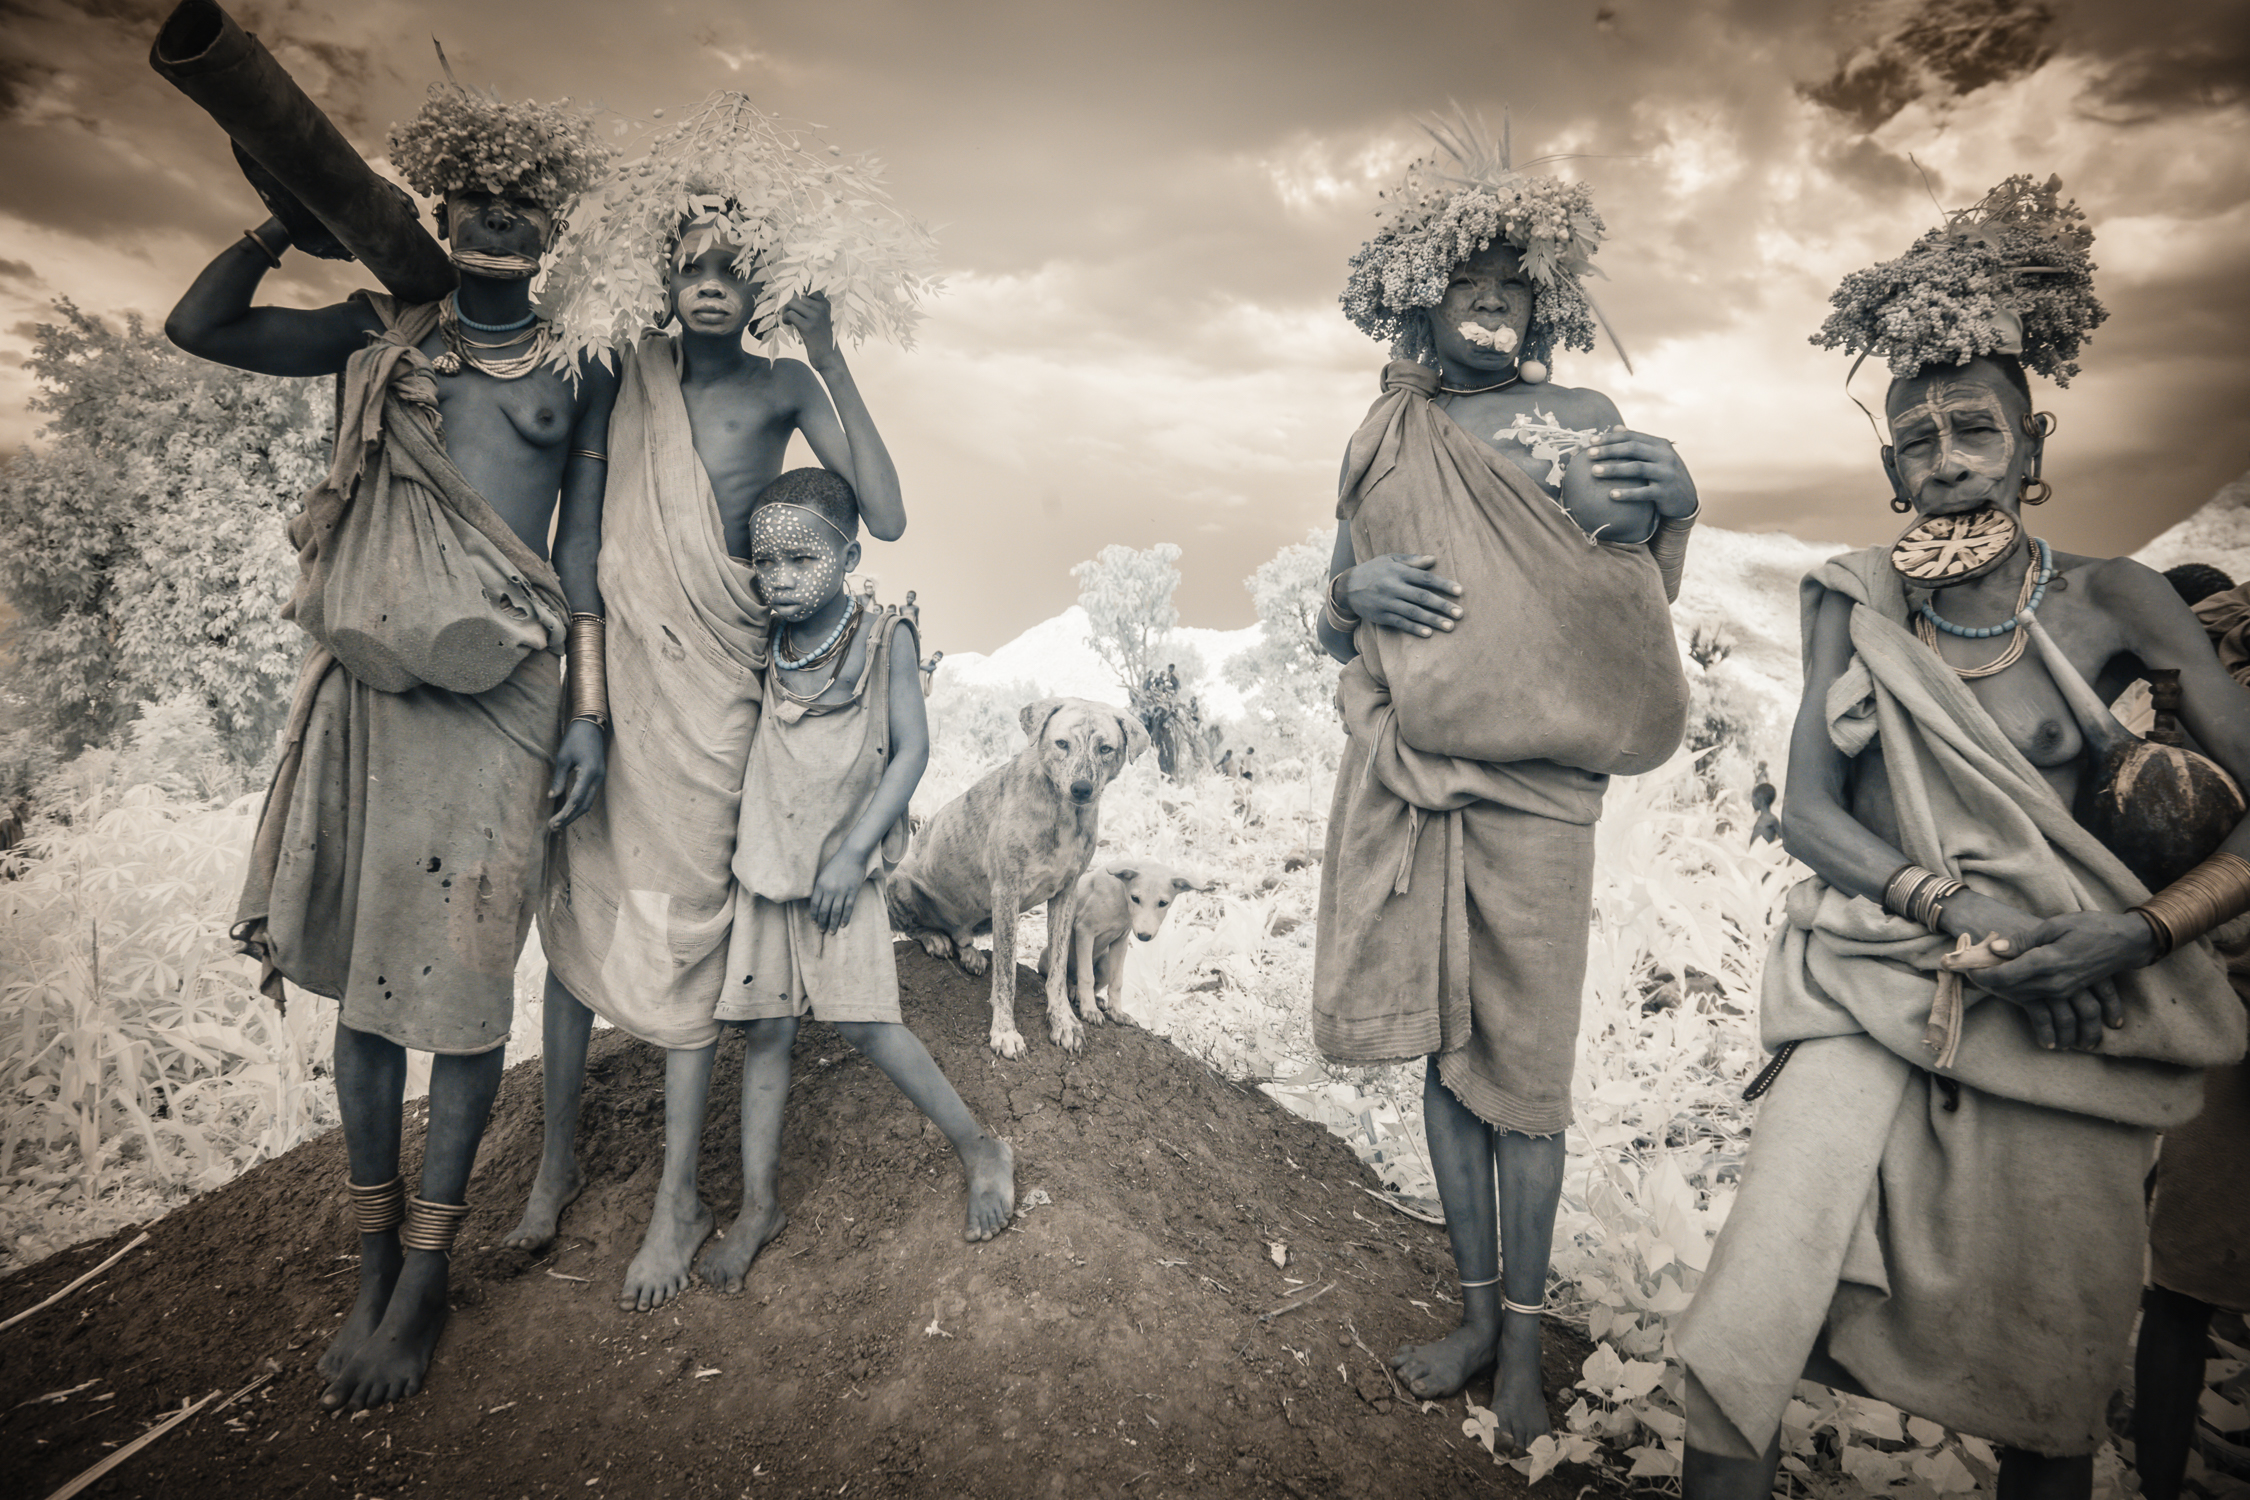 The clay lip plate worn by women of the Suri (pictured) and Mursi tribes symbolize a woman's strength and maturity.